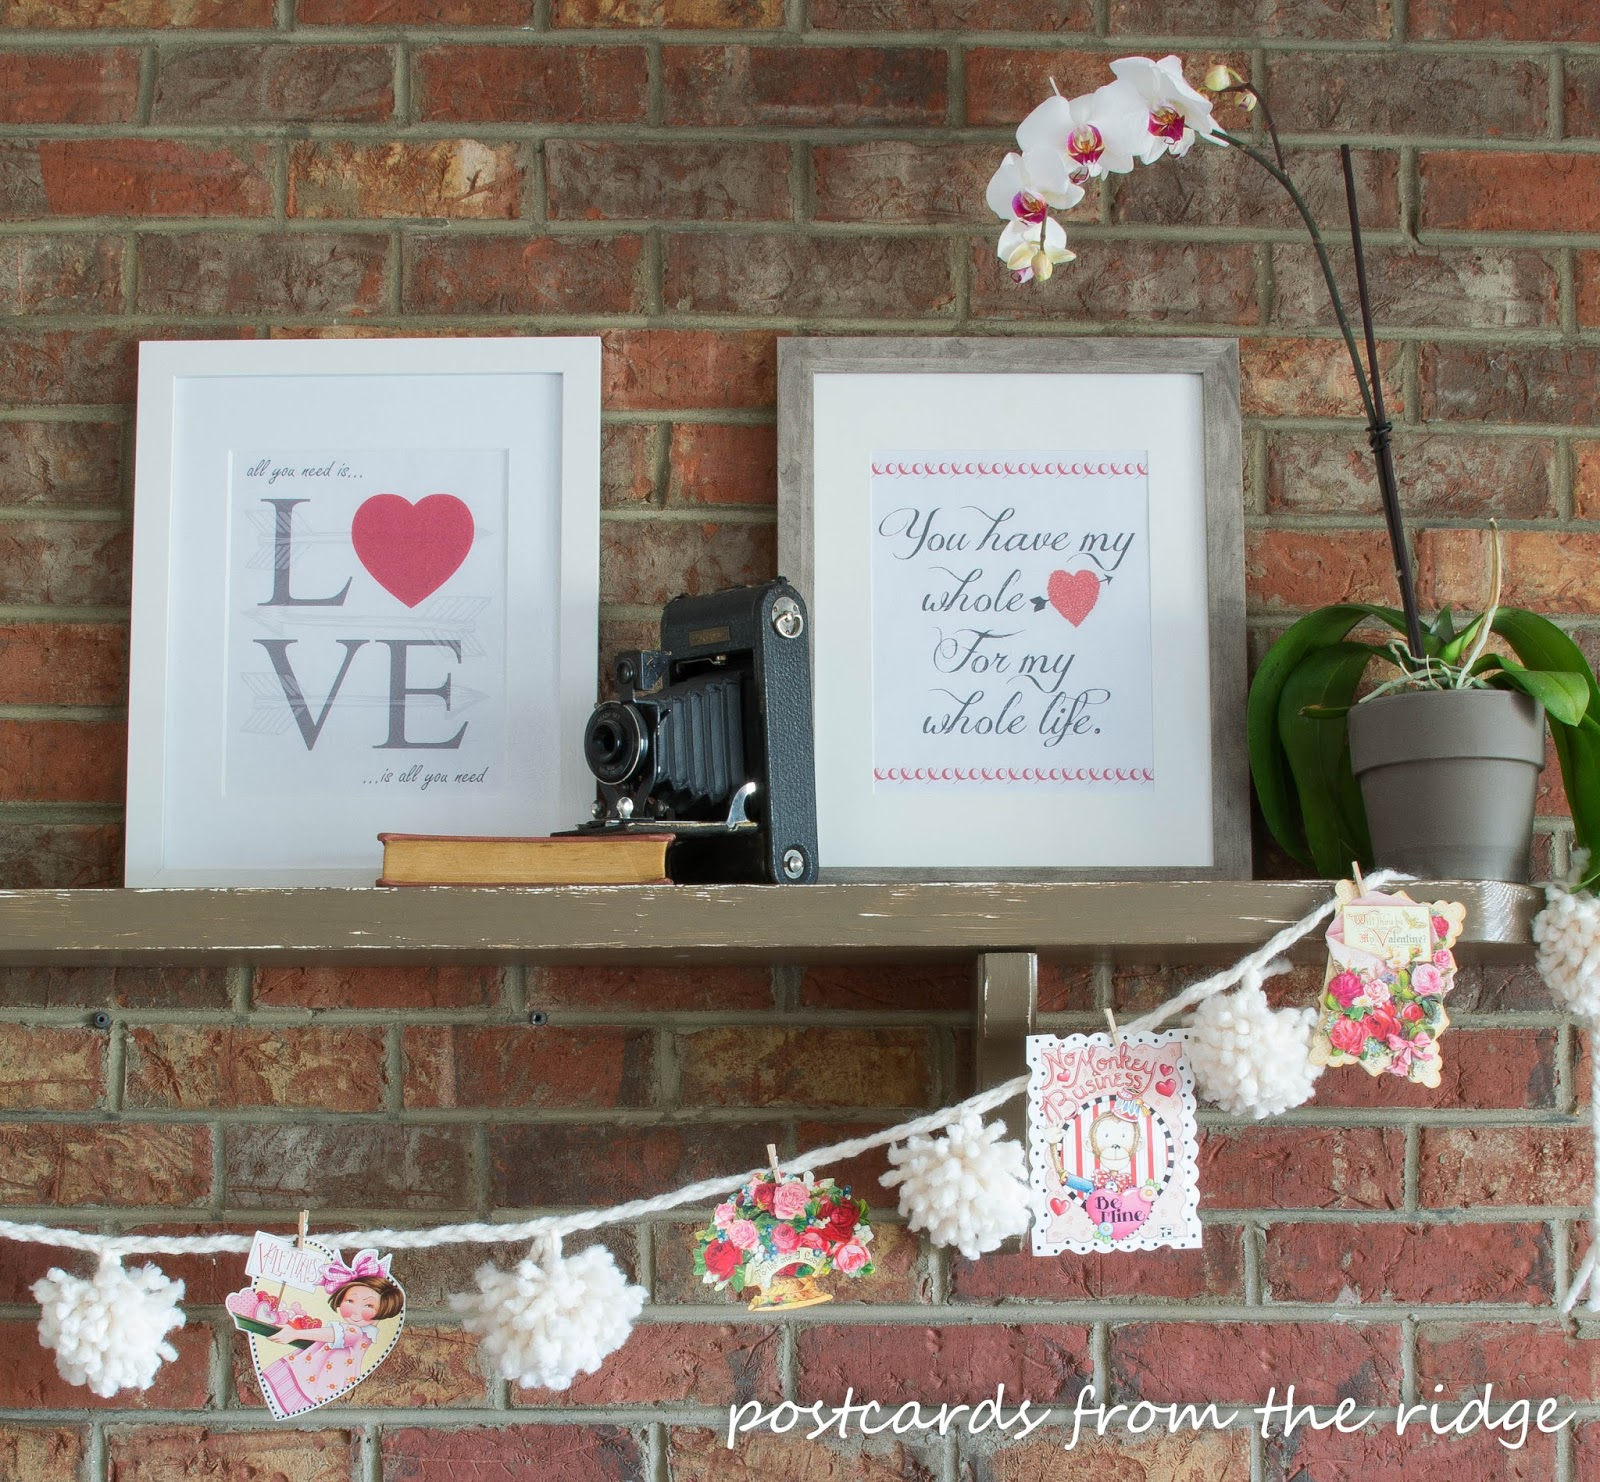 I love this free Valentine's printable artwork. Postcards from the Ridge.